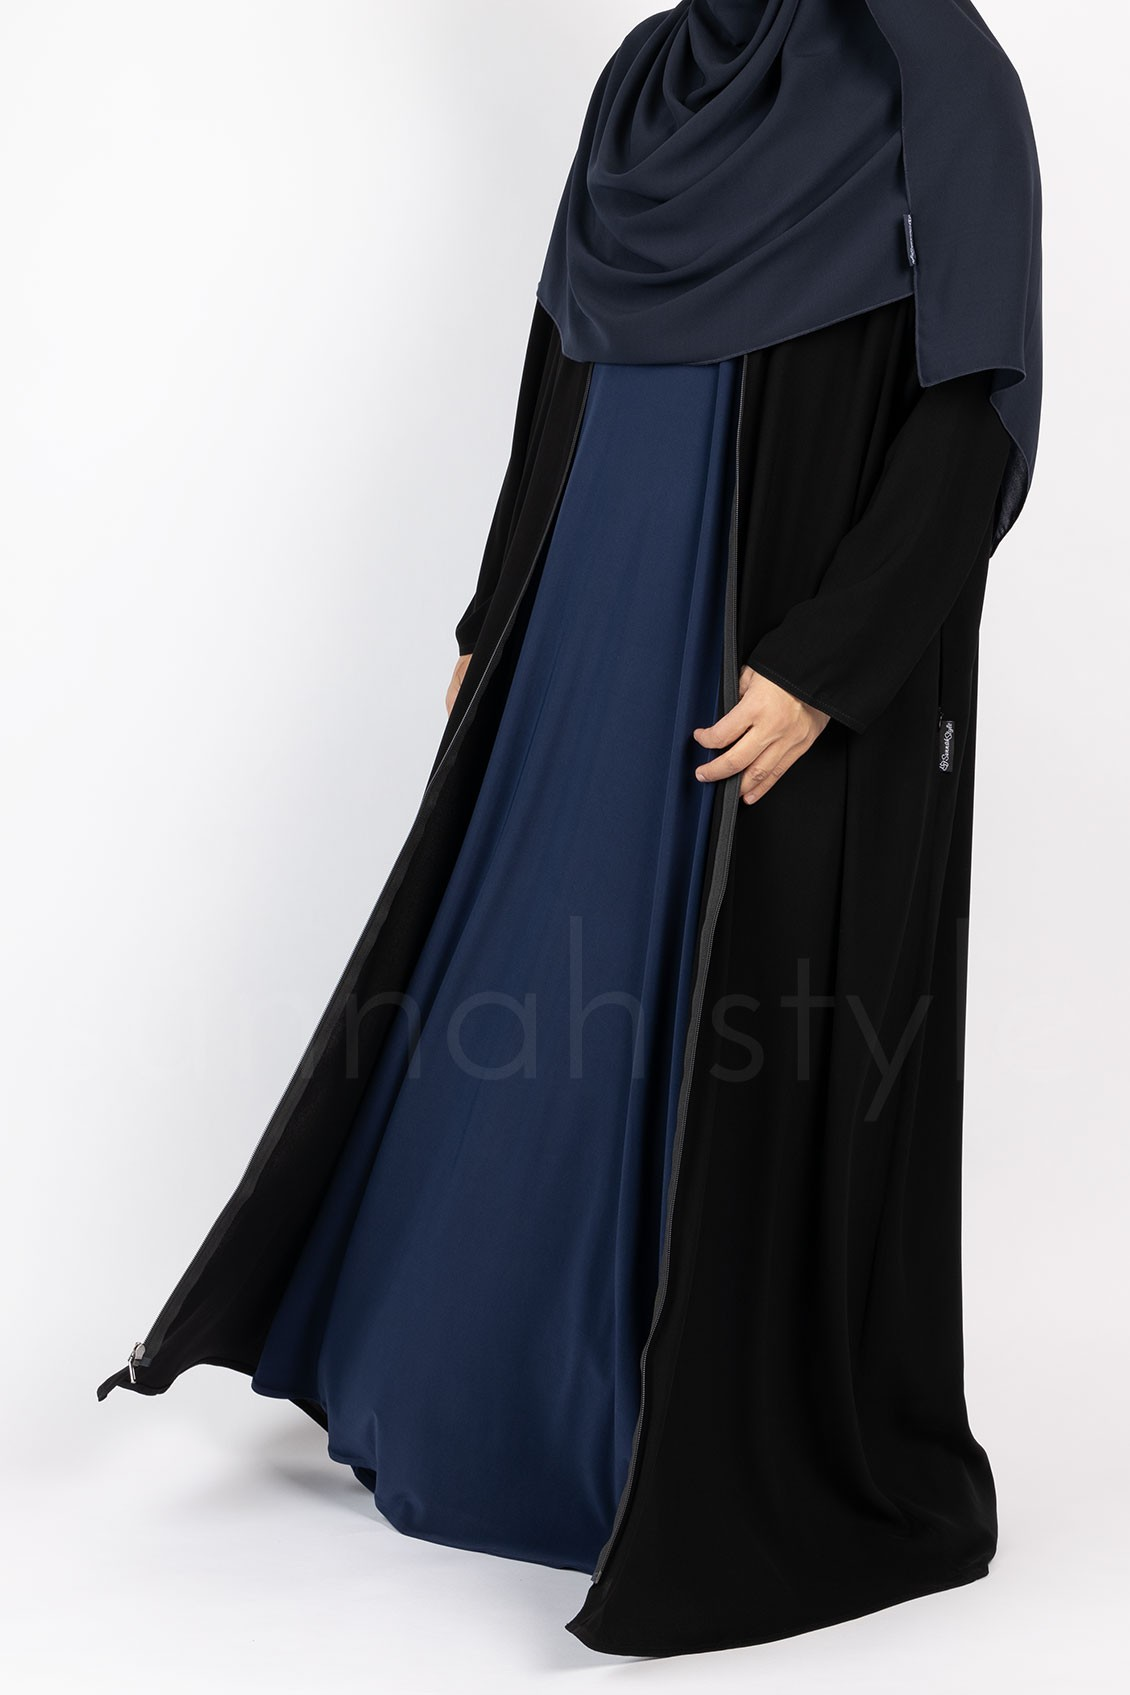 Sunnah Style Essentials Full Zip Abaya Black